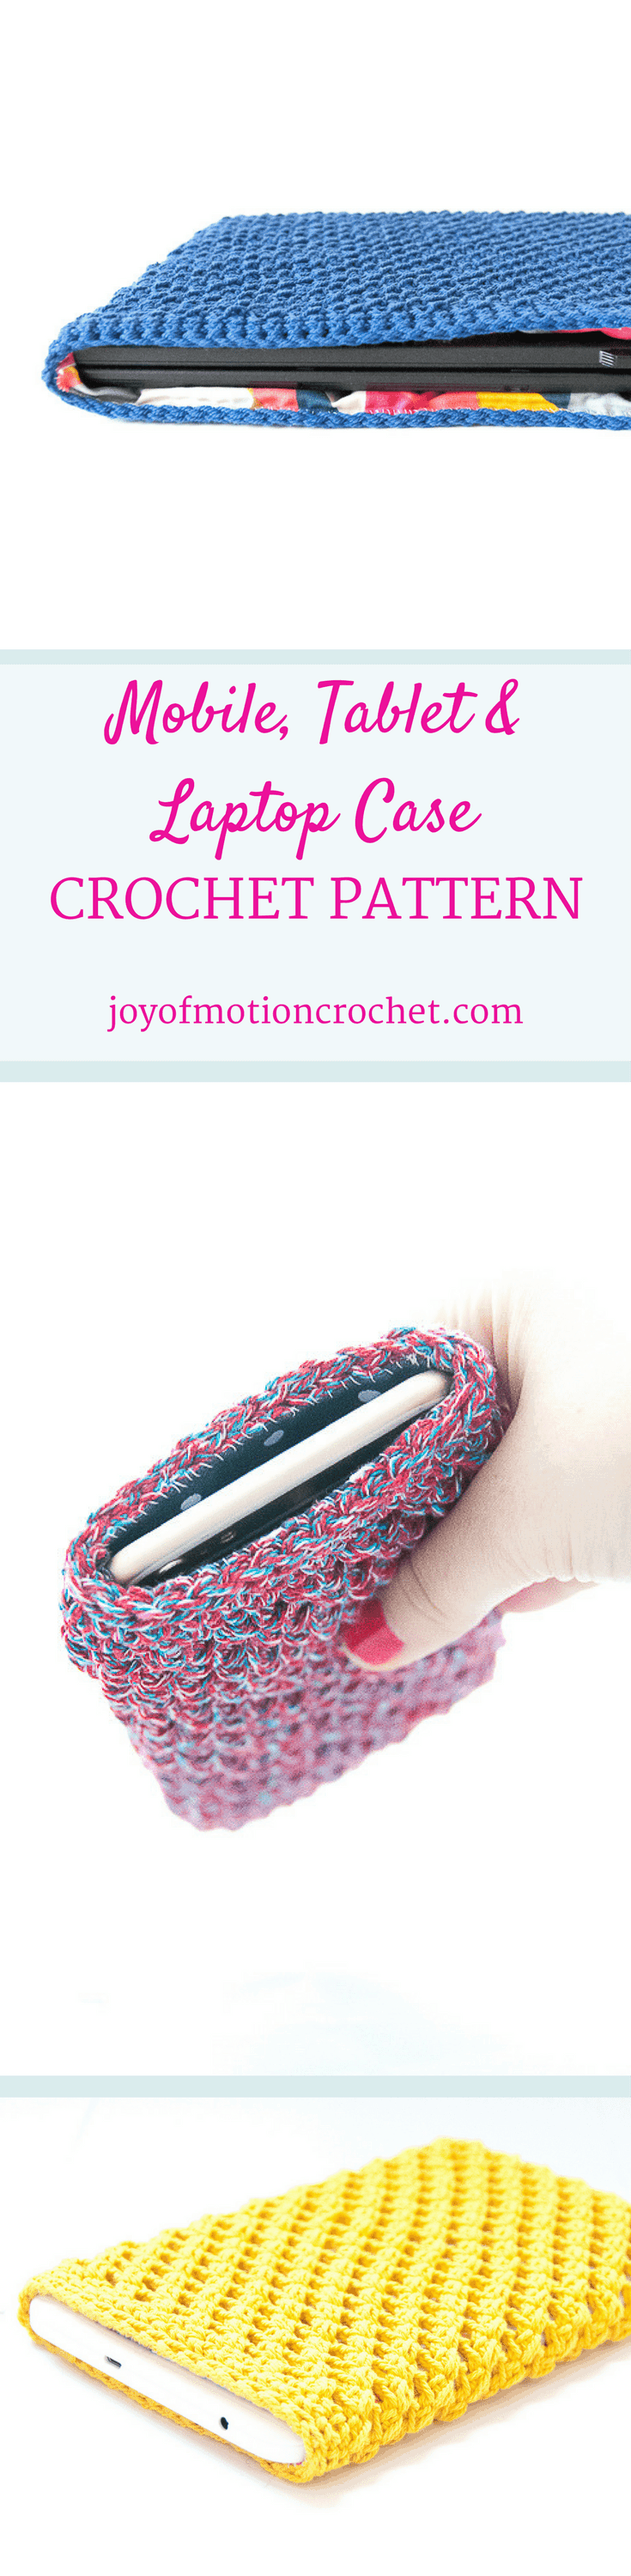 The Mobile, Tablet & Laptop Case Crochet pattern a 3 in 1 pattern. It has all the instructions to customize it to any laptop, iPhone, mobile or tablet. Mobile Crochet Pattern, Mobile Cover Crochet Pattern. Laptop Case Crochet Pattern. iPhone Case Crochet pattern. Laptop cover crochet pattern. Crochet pattern for tablet cover. Pin it now & keep it forever.